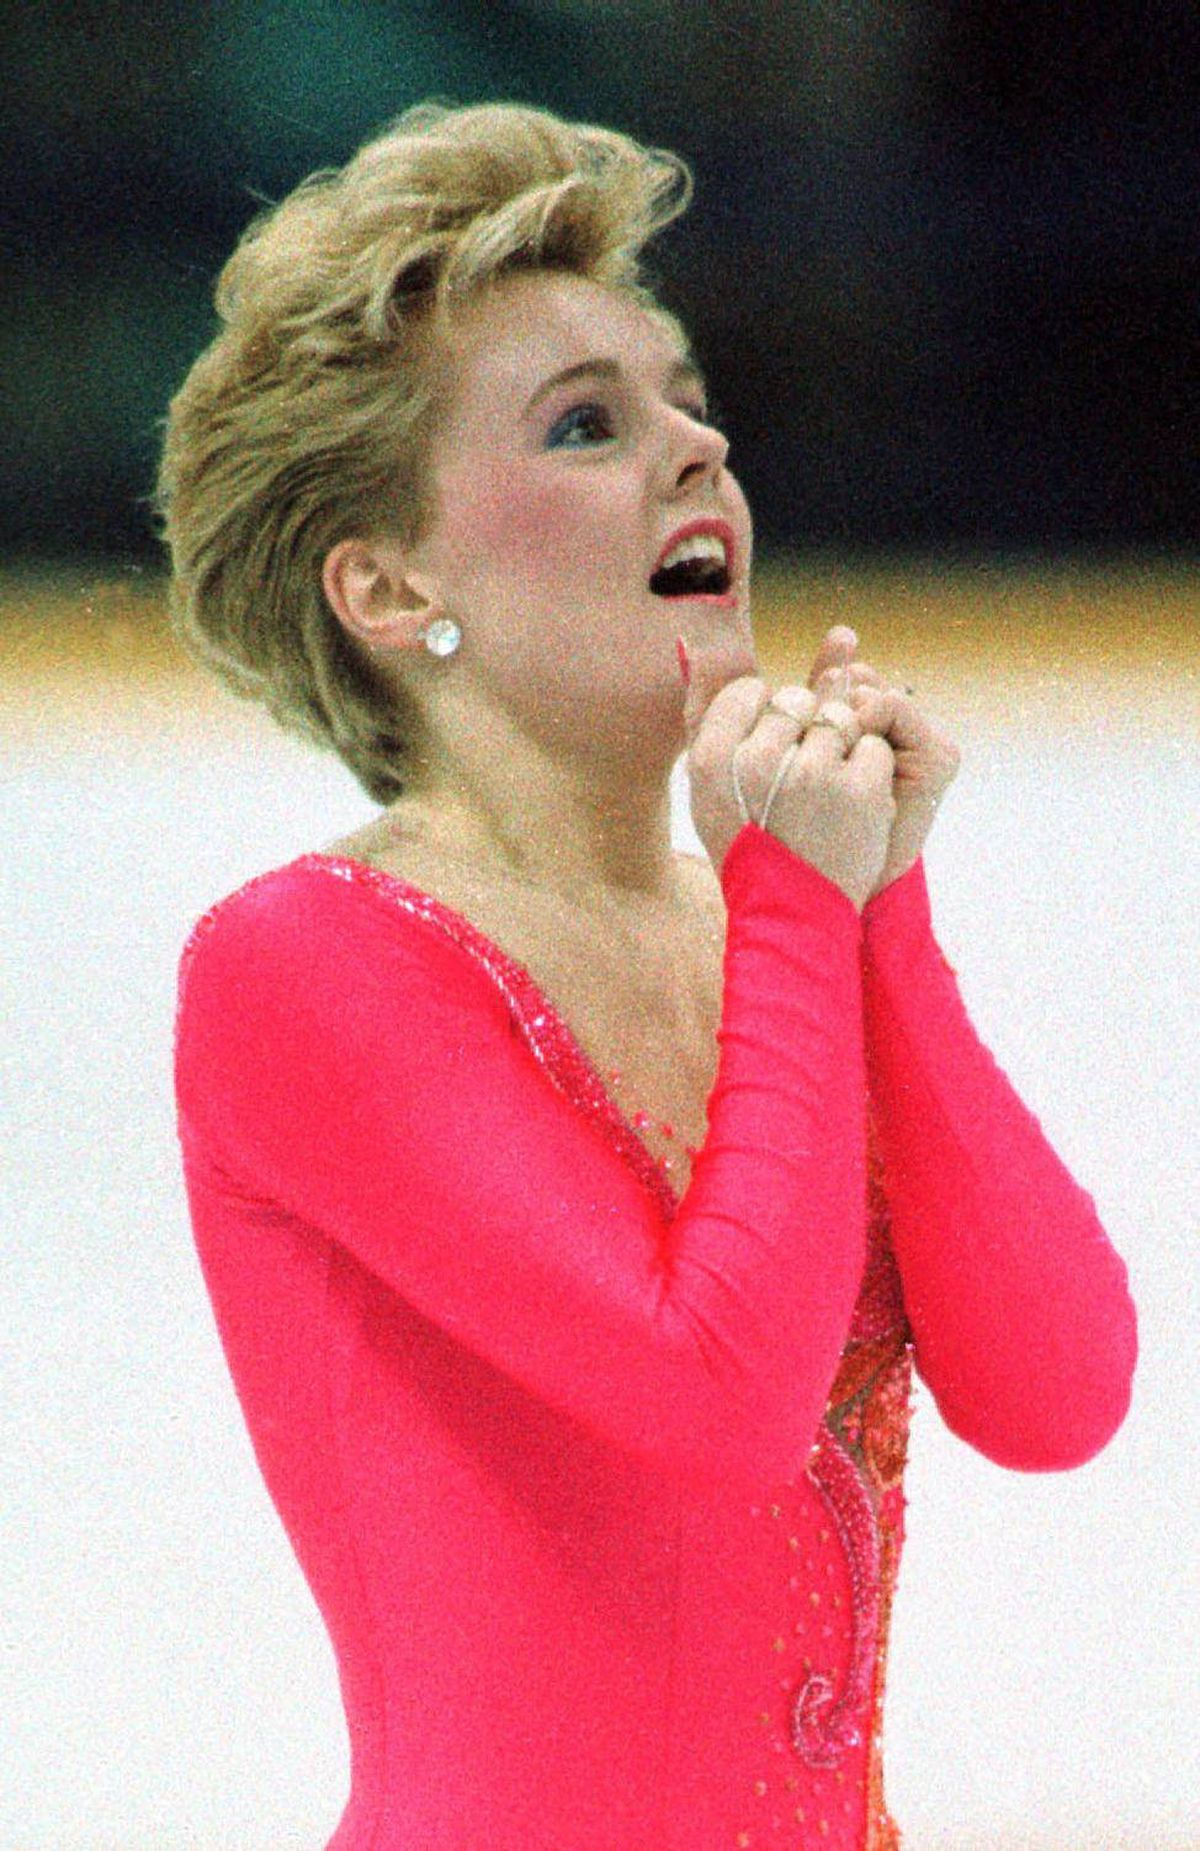 Elizabeth Manley clasps her hands together with delight after winning the free skating program in women's singles figure skating in Calgary in this February 1988 file photo. Manley has been named to the Canadian Figure Skating Hall of Fame.